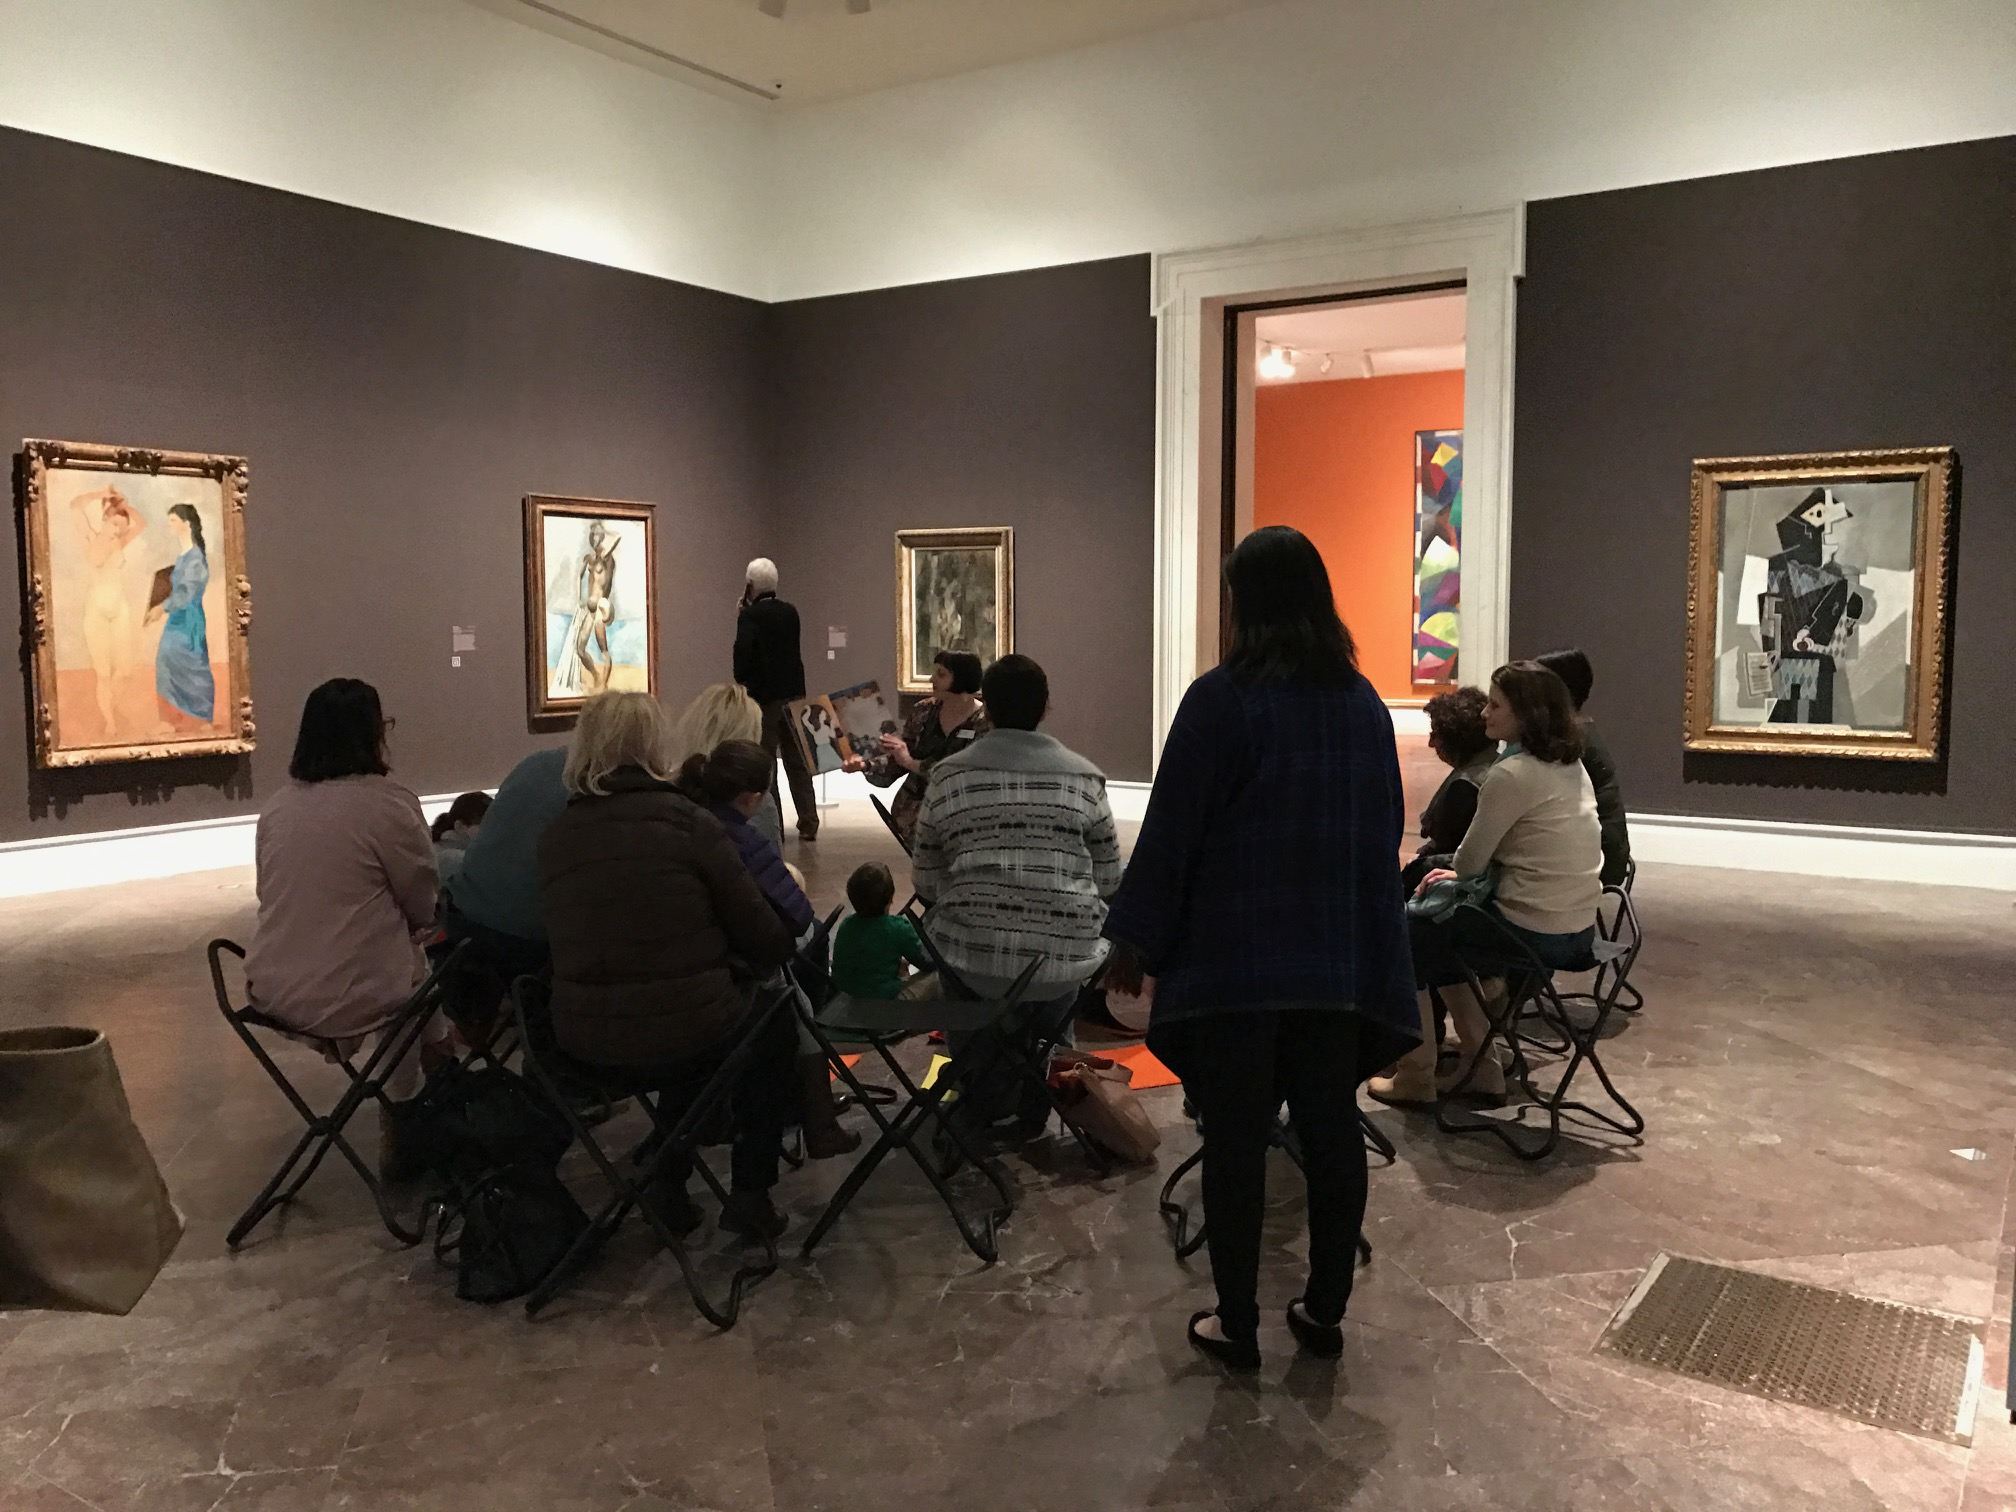 The Gallery offers a variety of fun events for kids. From story hour to art class to special tours. Mary Friona-Celani/Special to The News